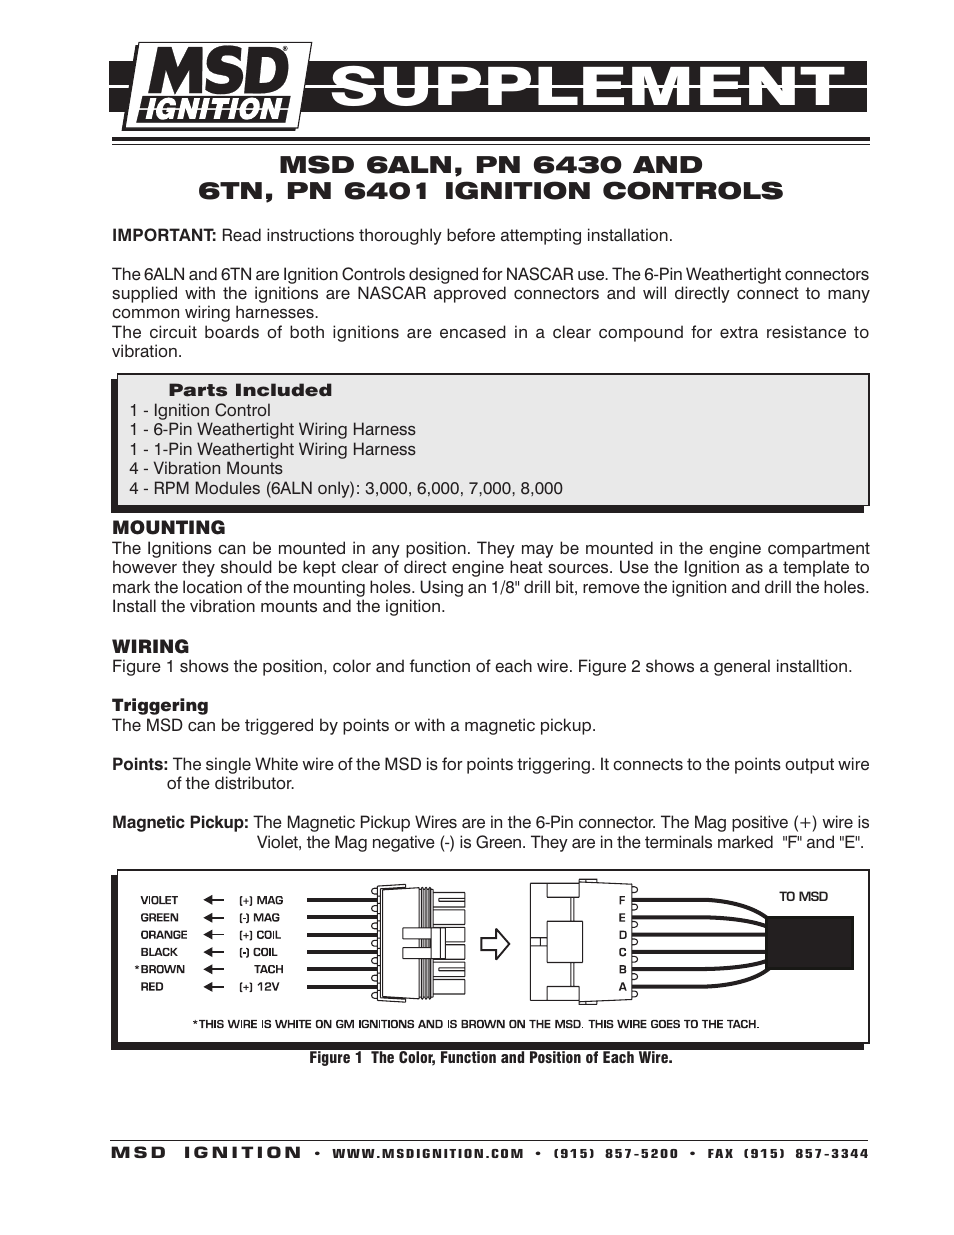 msd 6430 6aln ignition control supplement page1 tg66m3170c00 wiring diagram,m \u2022 indy500 co  at gsmx.co